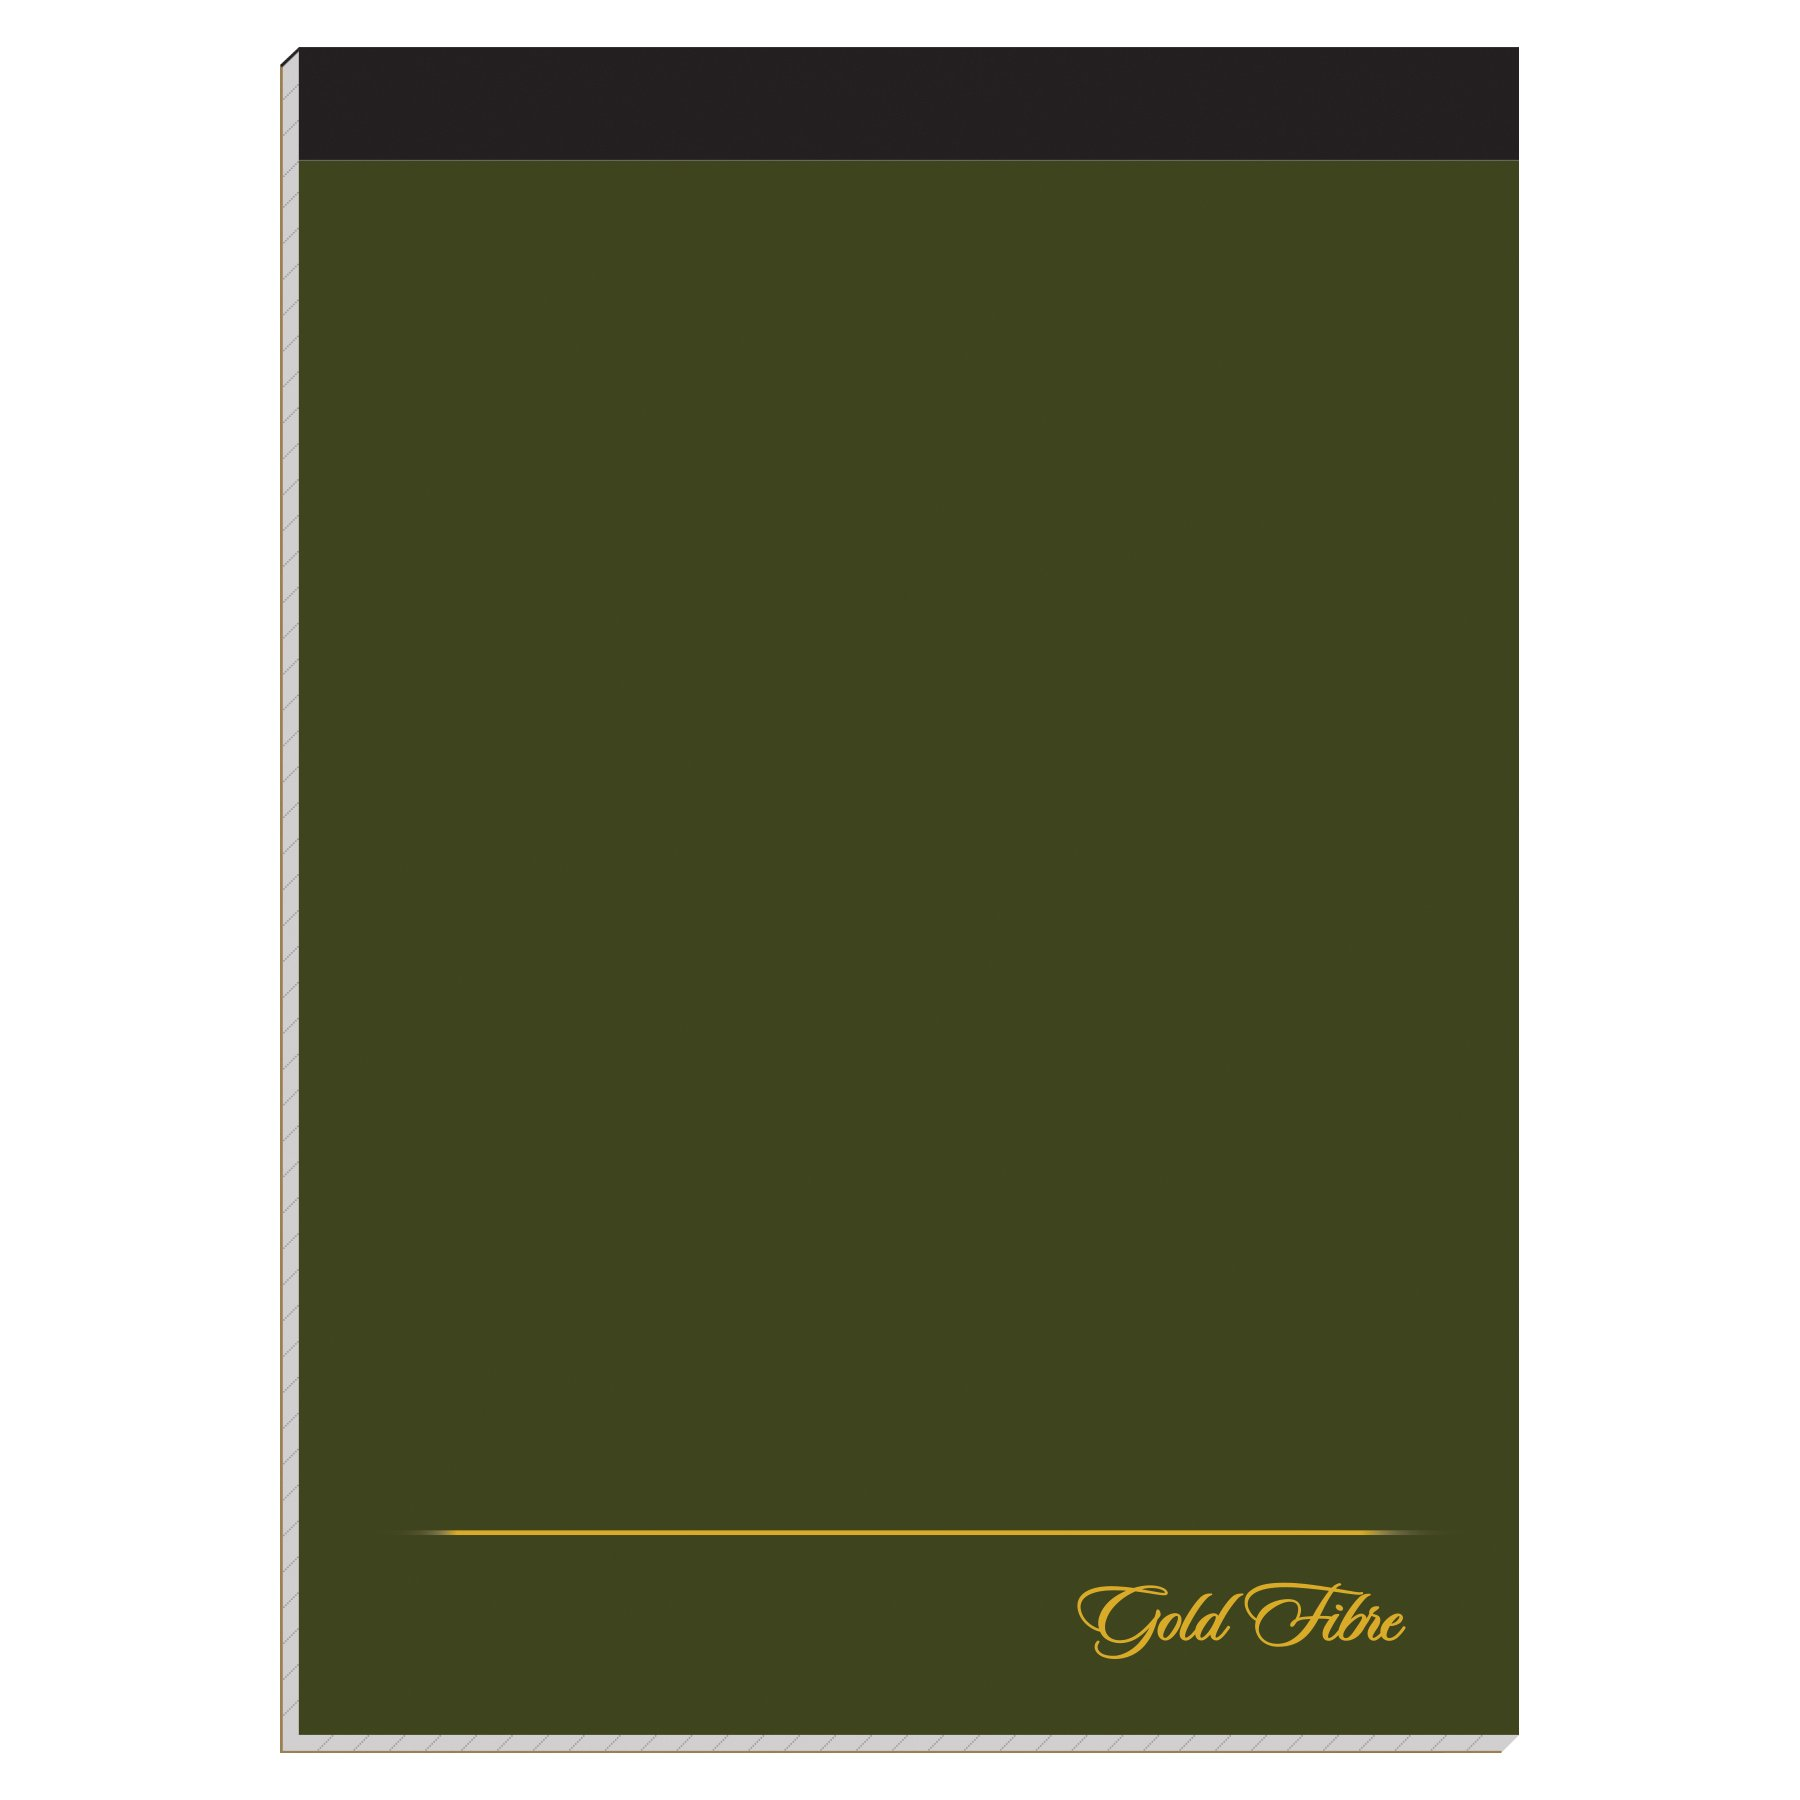 Ampad Gold Fibre Classic Planning Pad, Dark Green Cover, Quad Ruling, 80 Sheets per Pad (20-821)